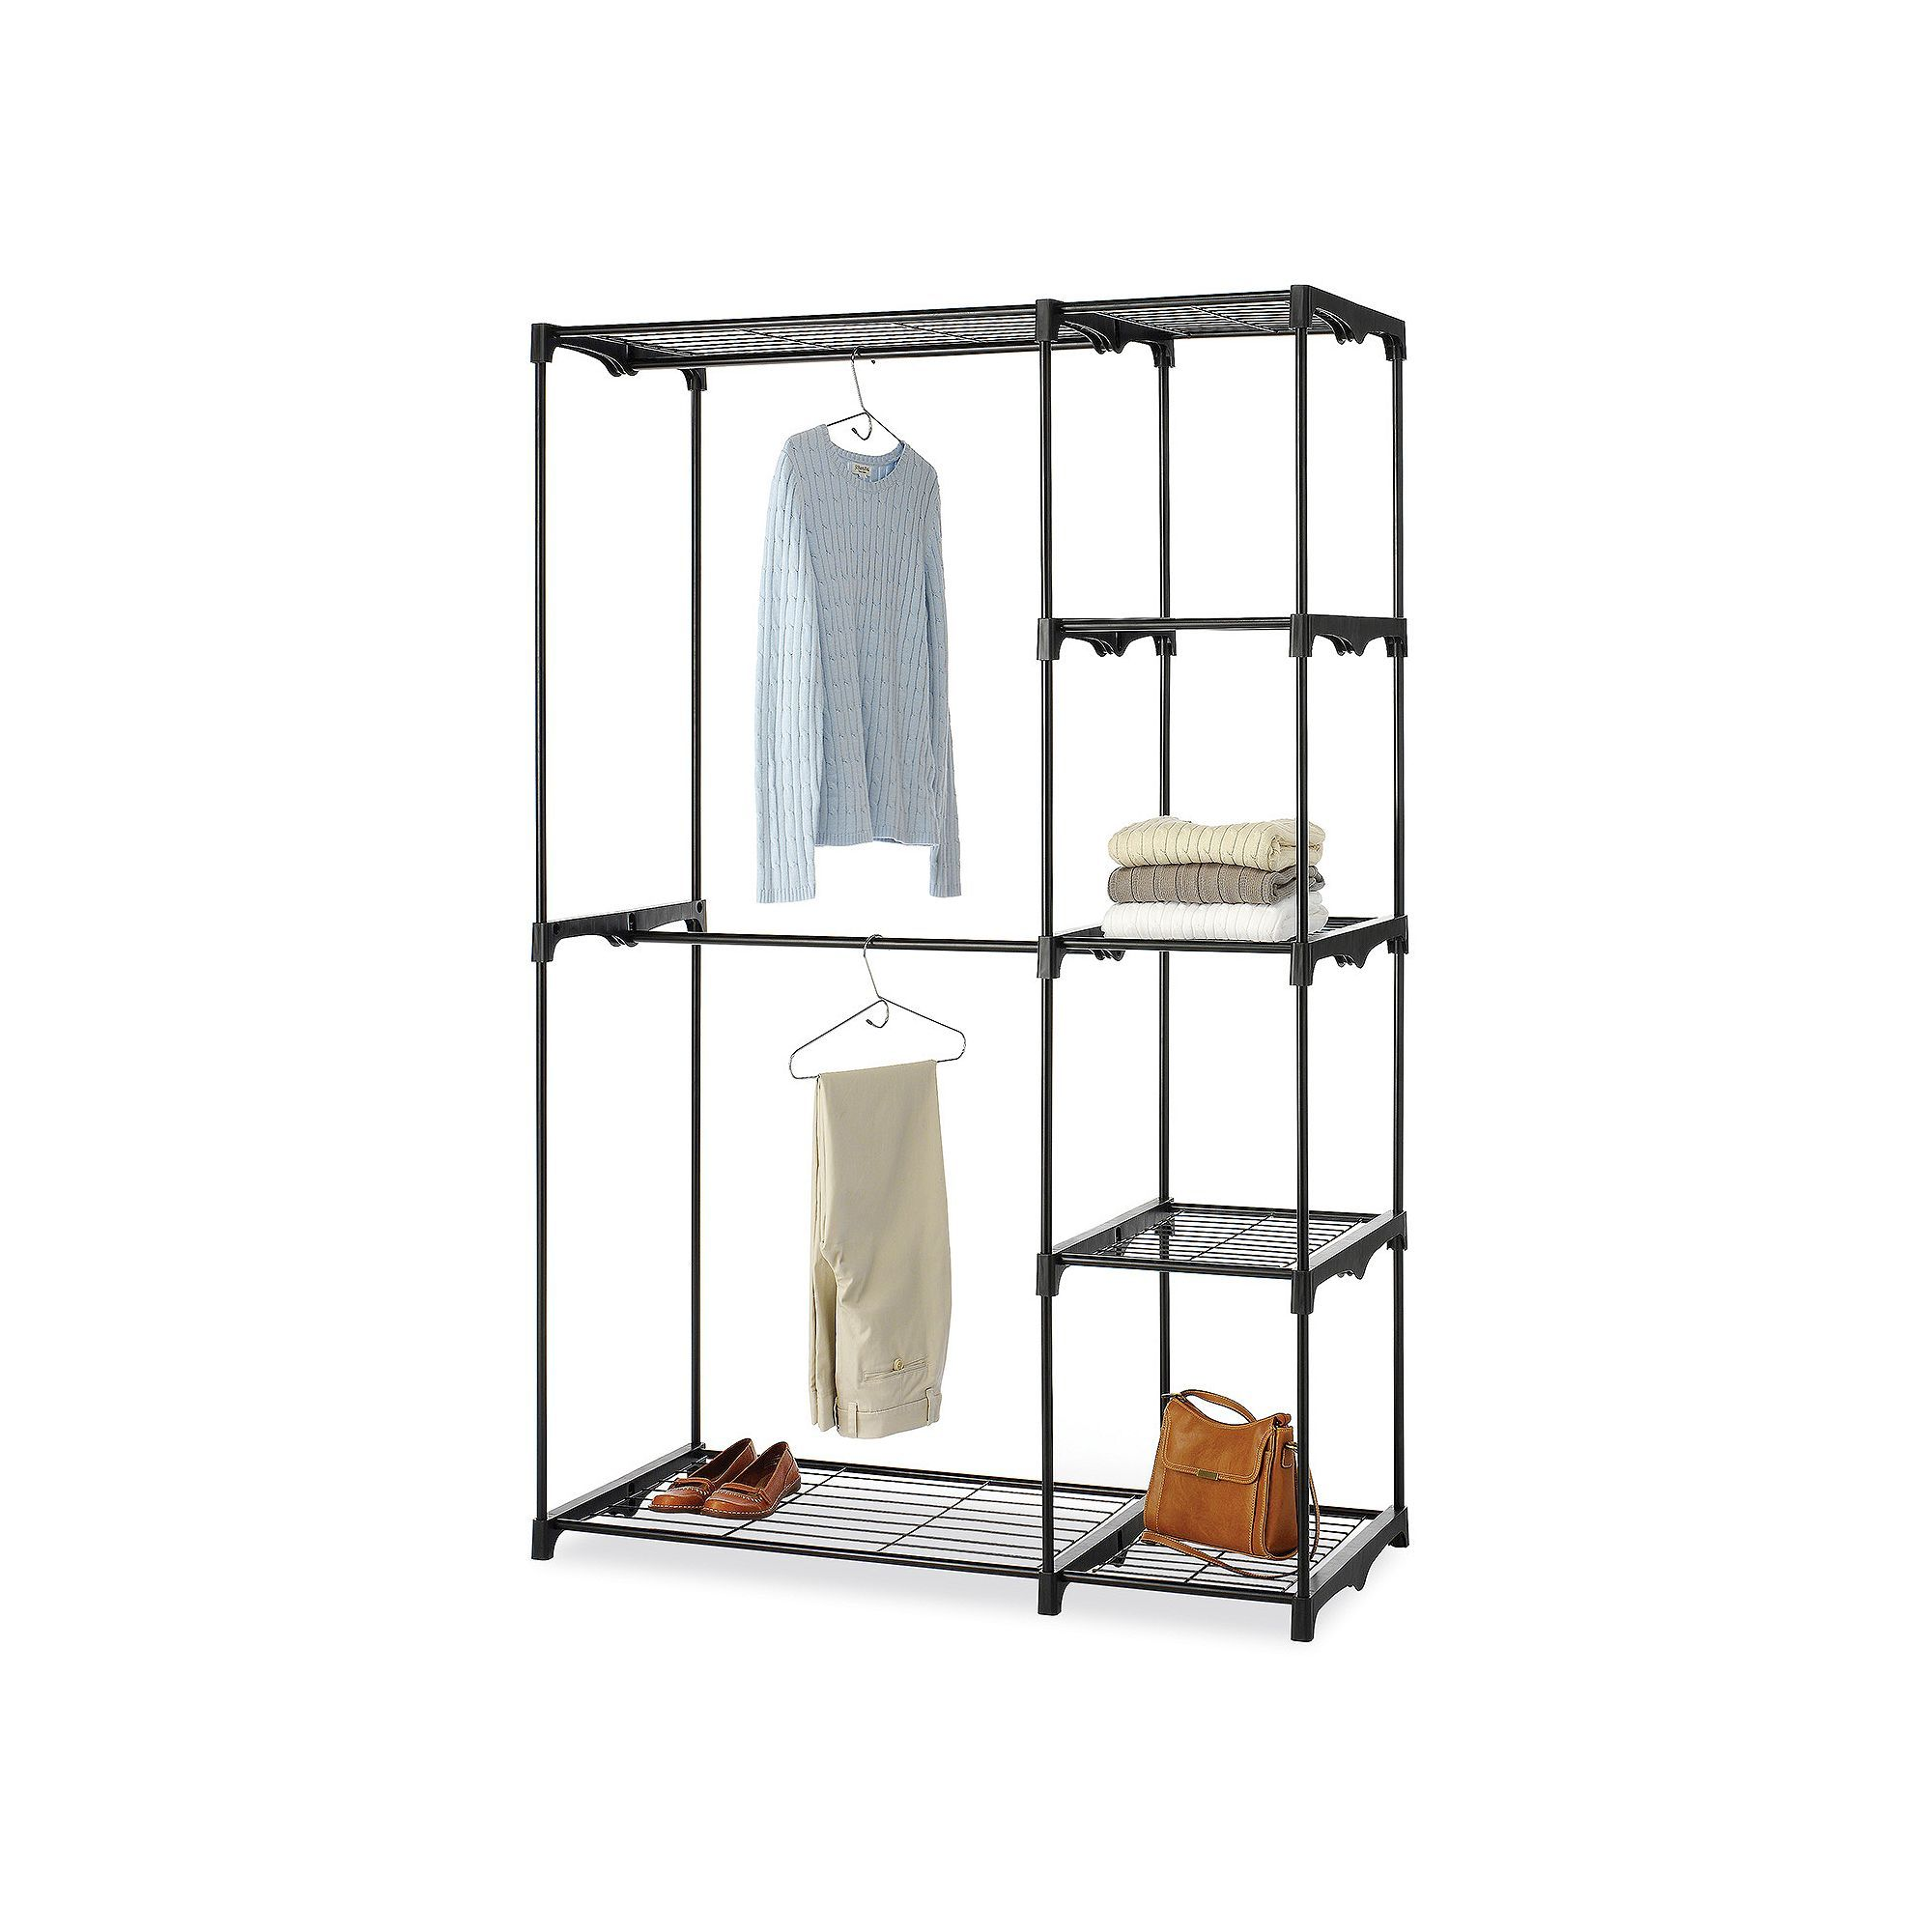 Whitmor Double Rod Closet, Black